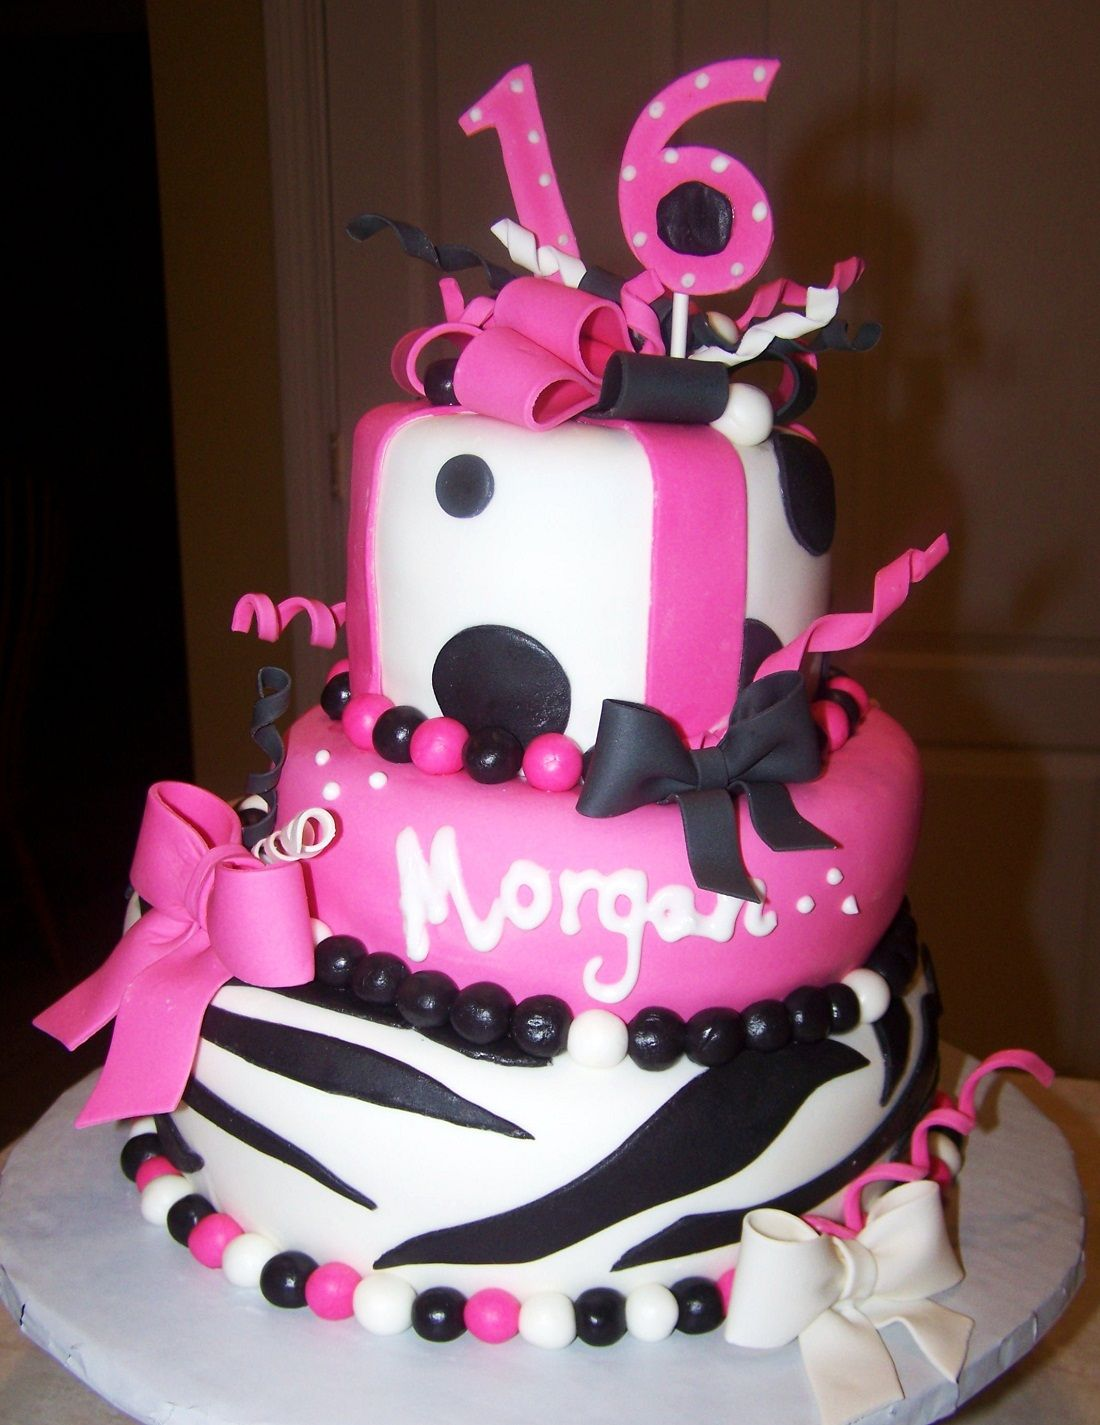 Dance Cakes For Sweet  Birthdays Sweet  Cakes  Decoration - Sweet 16 birthday cakes